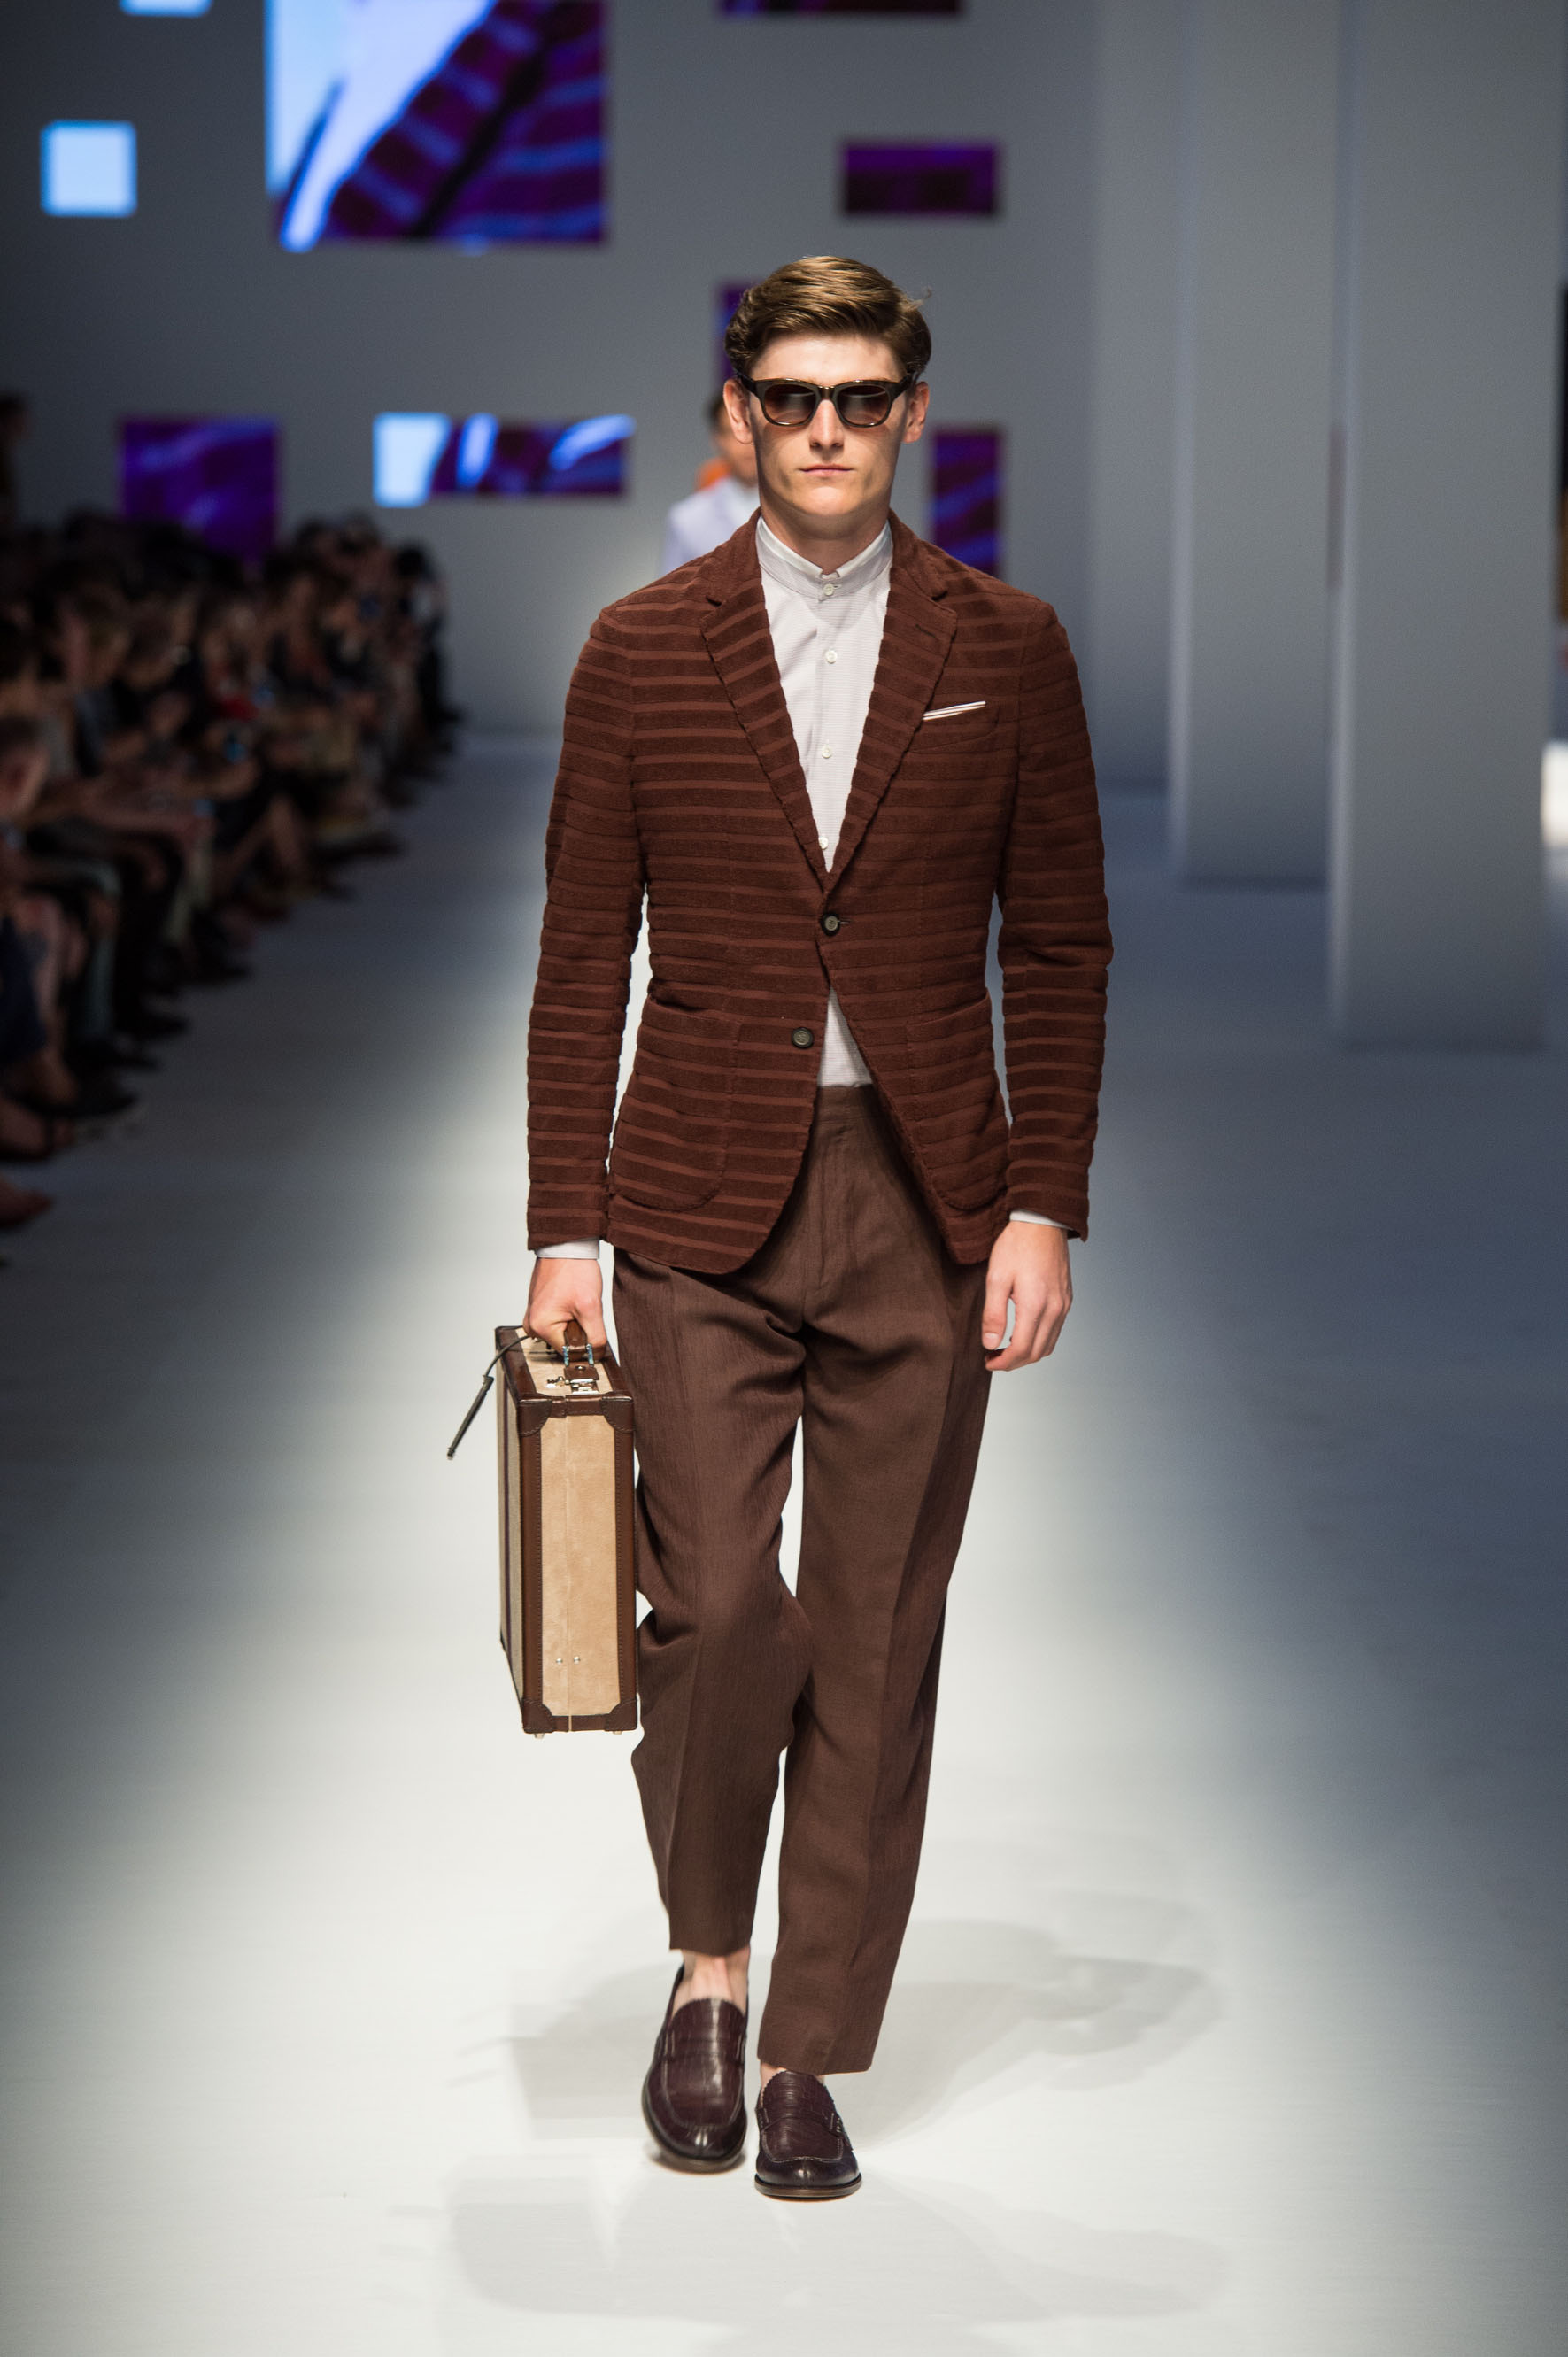 Two-button jacket with terry effect stripes, reverse-pleated linen-silk pants, crocodile loafers, briefcase with stripe